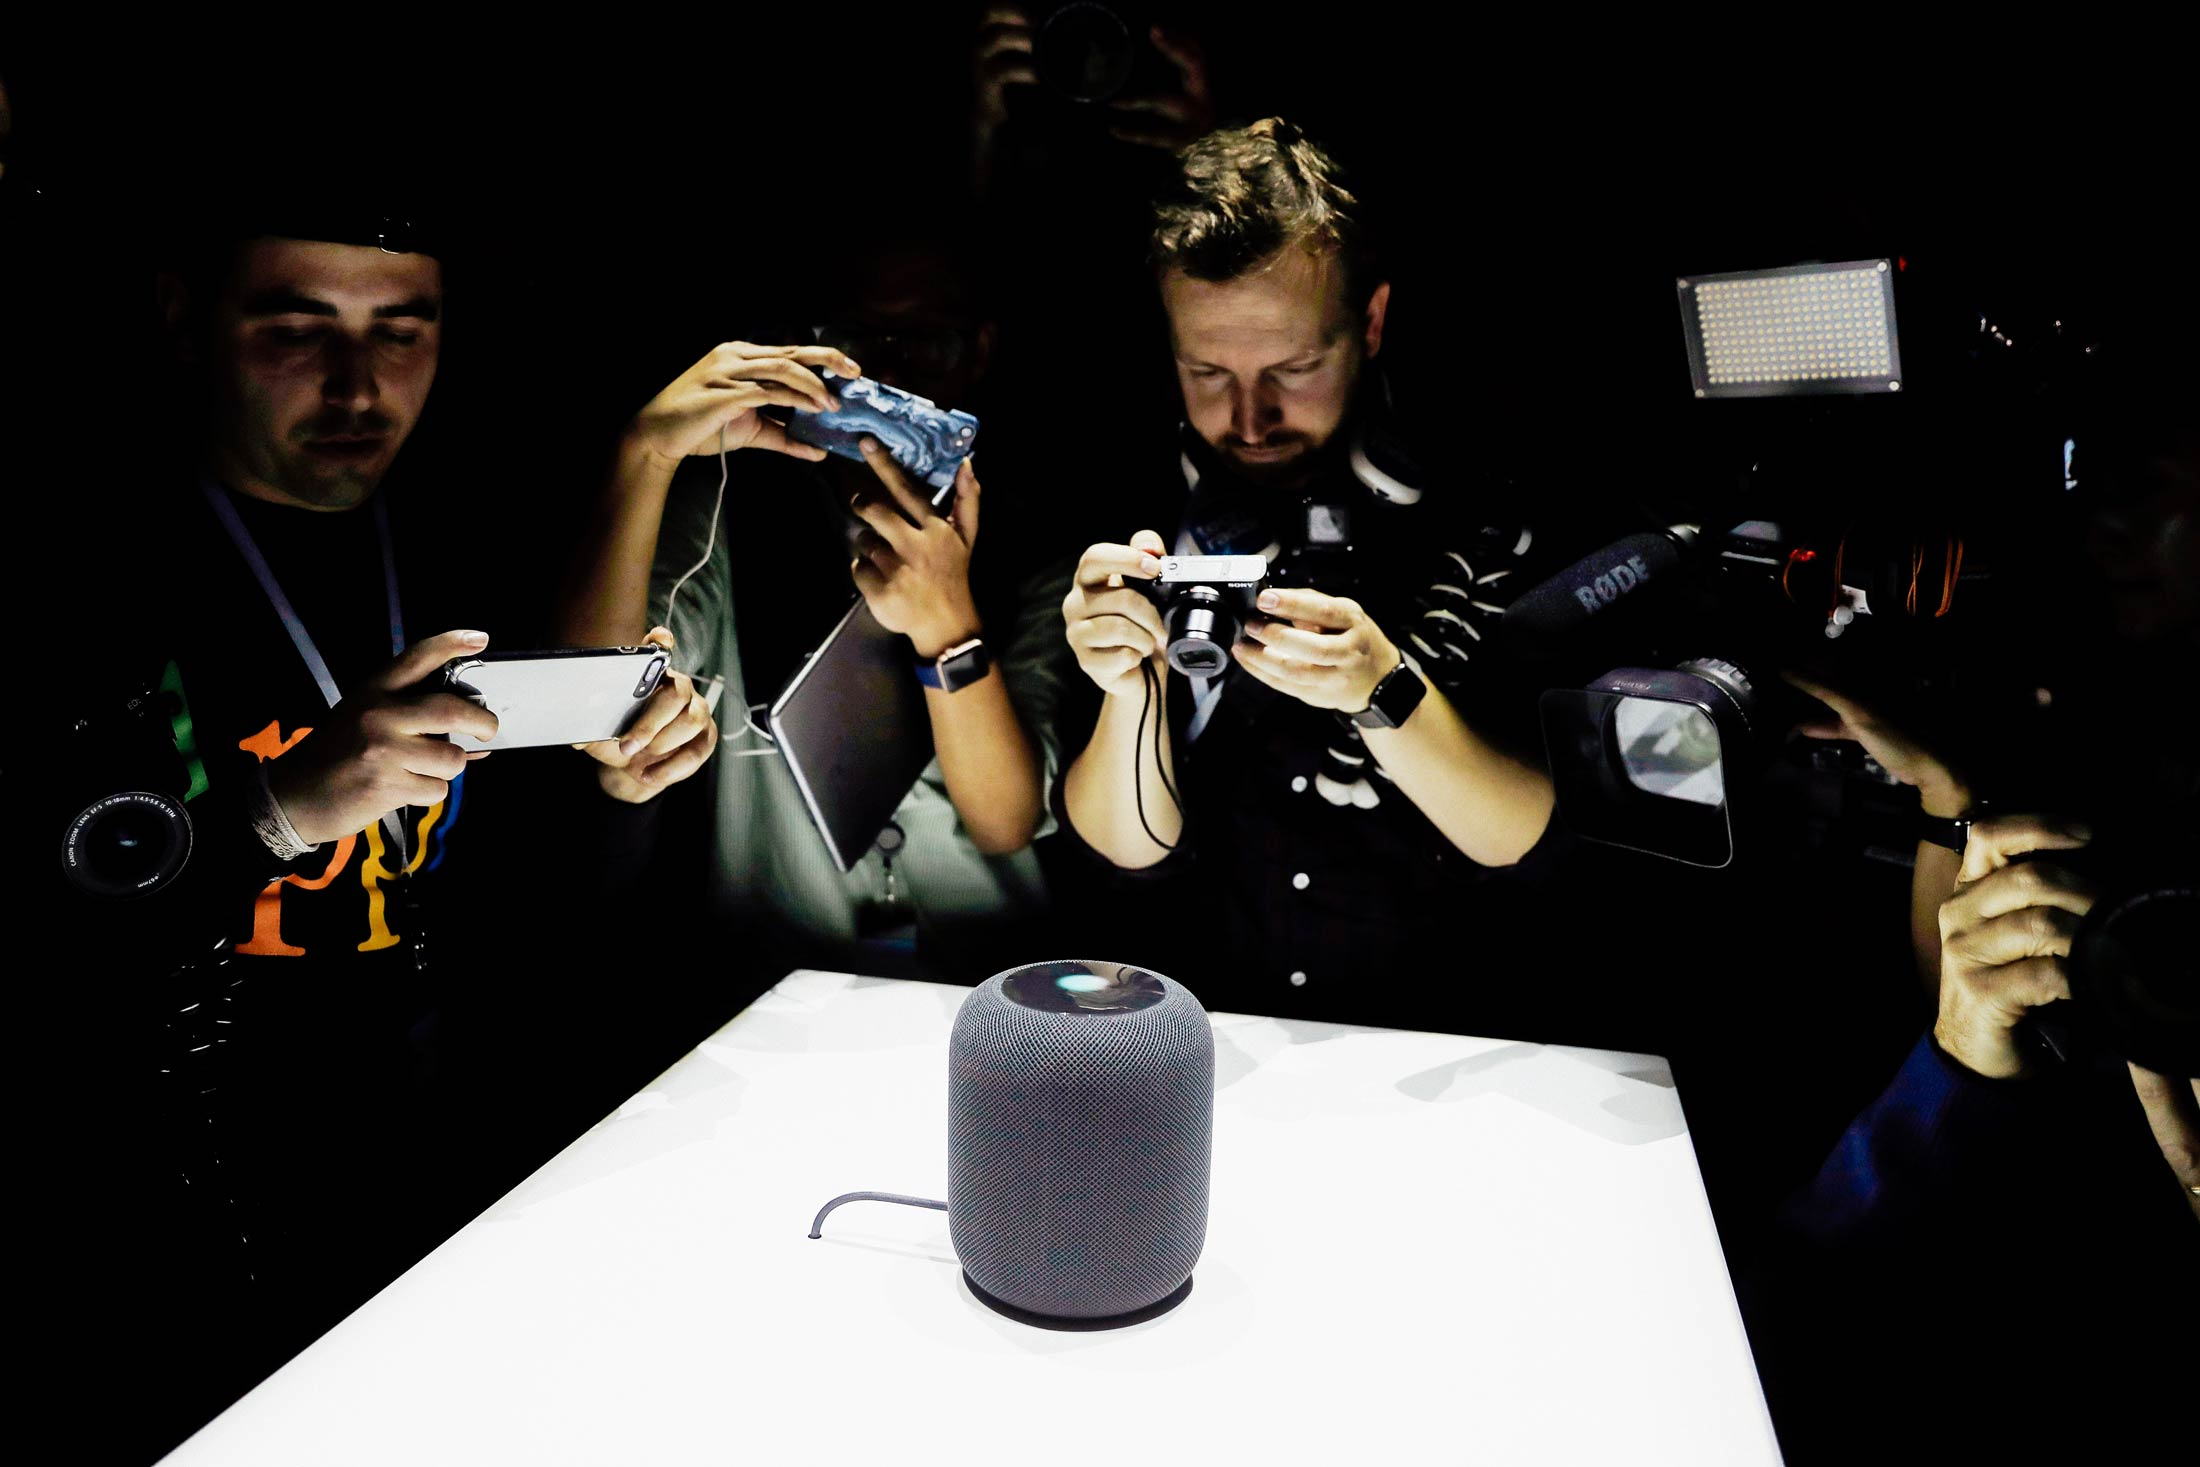 Apple HomePod surrounded by media photographers at the Apple WWDC, June 2017.